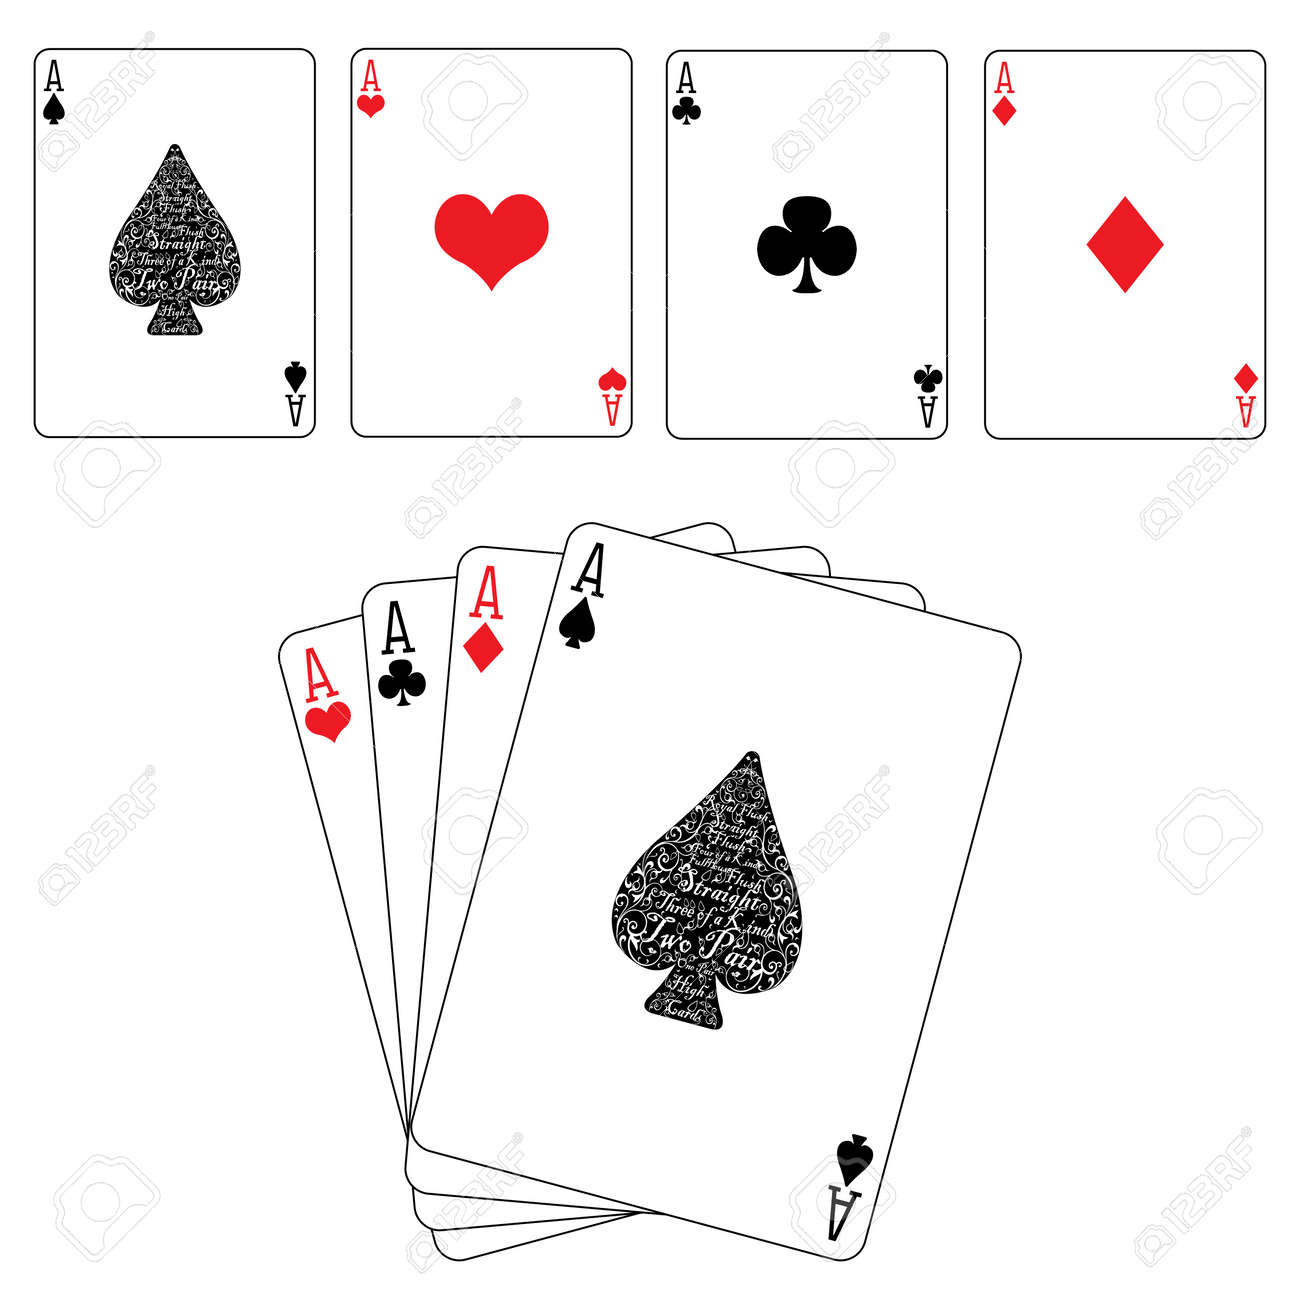 Poker Cards Hearts Hearts Clubs Ace Cards